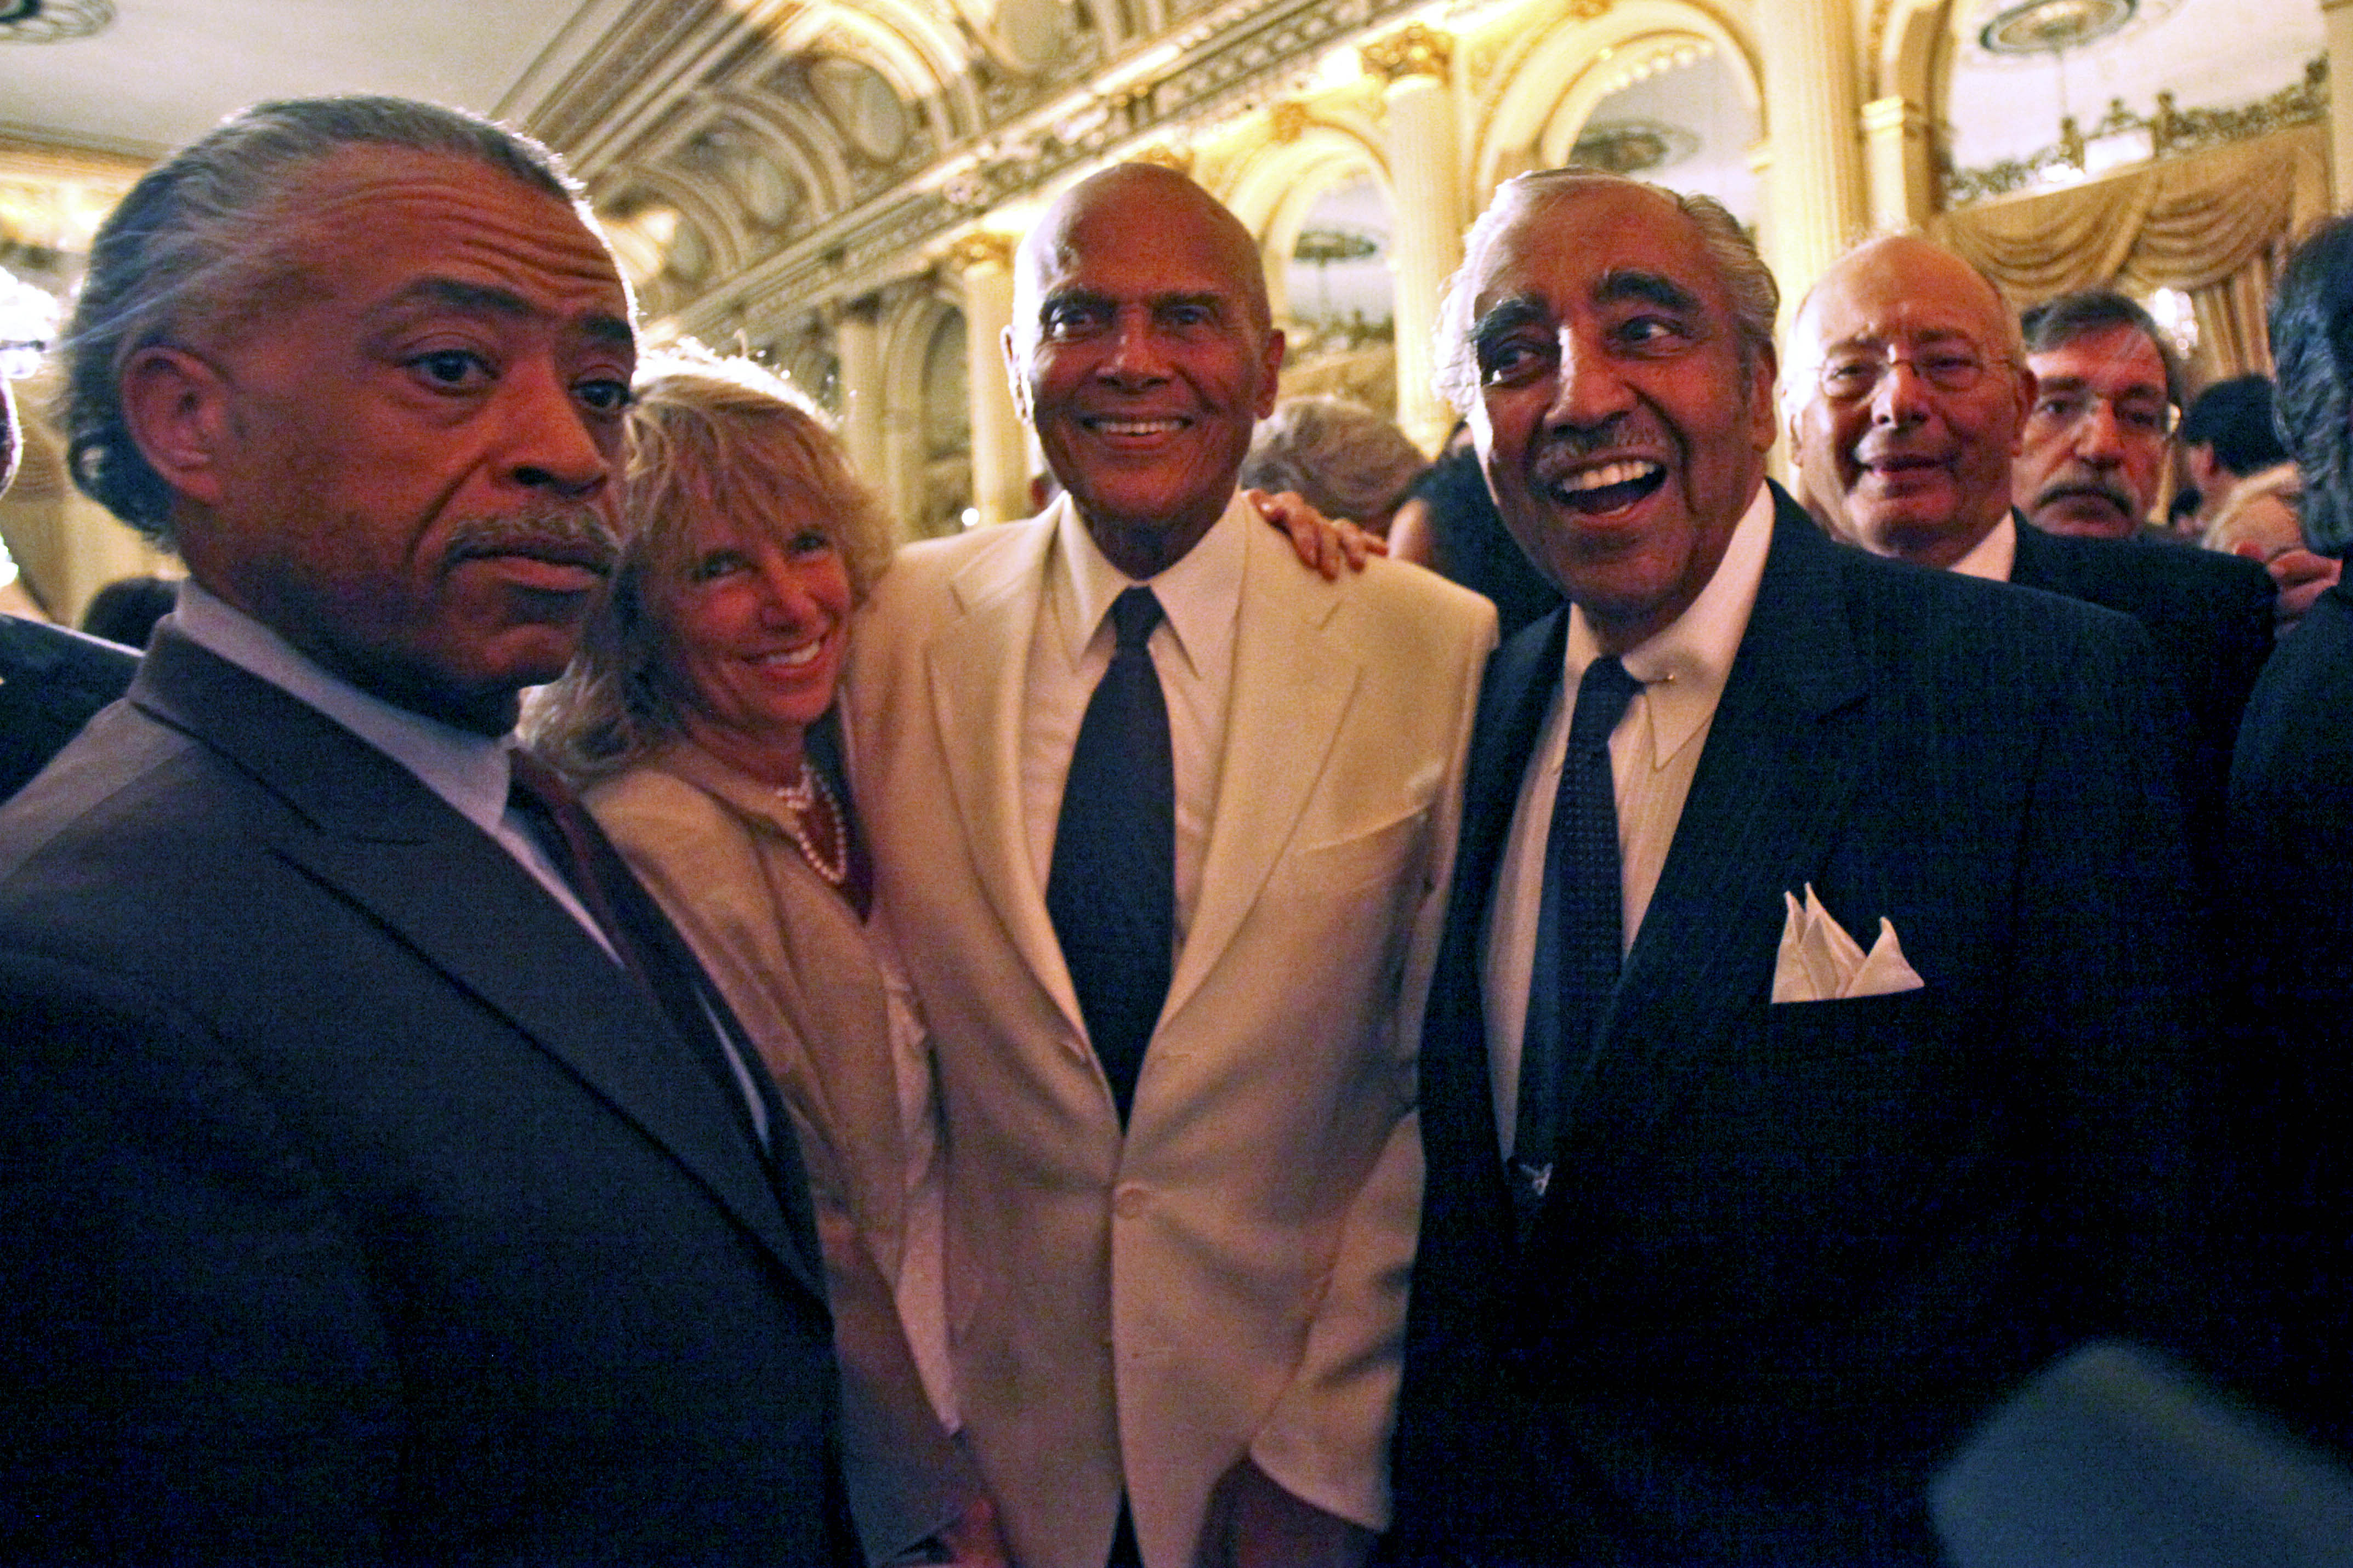 From left, the Rev. Al Sharpton, Pamela Belafonte, Harry Belafonte, Rep. Charles Rangel, D-N.Y., and former Sen. Alfonse D'Amato are photographed together during Rangel's birthday fundraiser at the Plaza Hotel in New York City, Aug. 11, 2010.